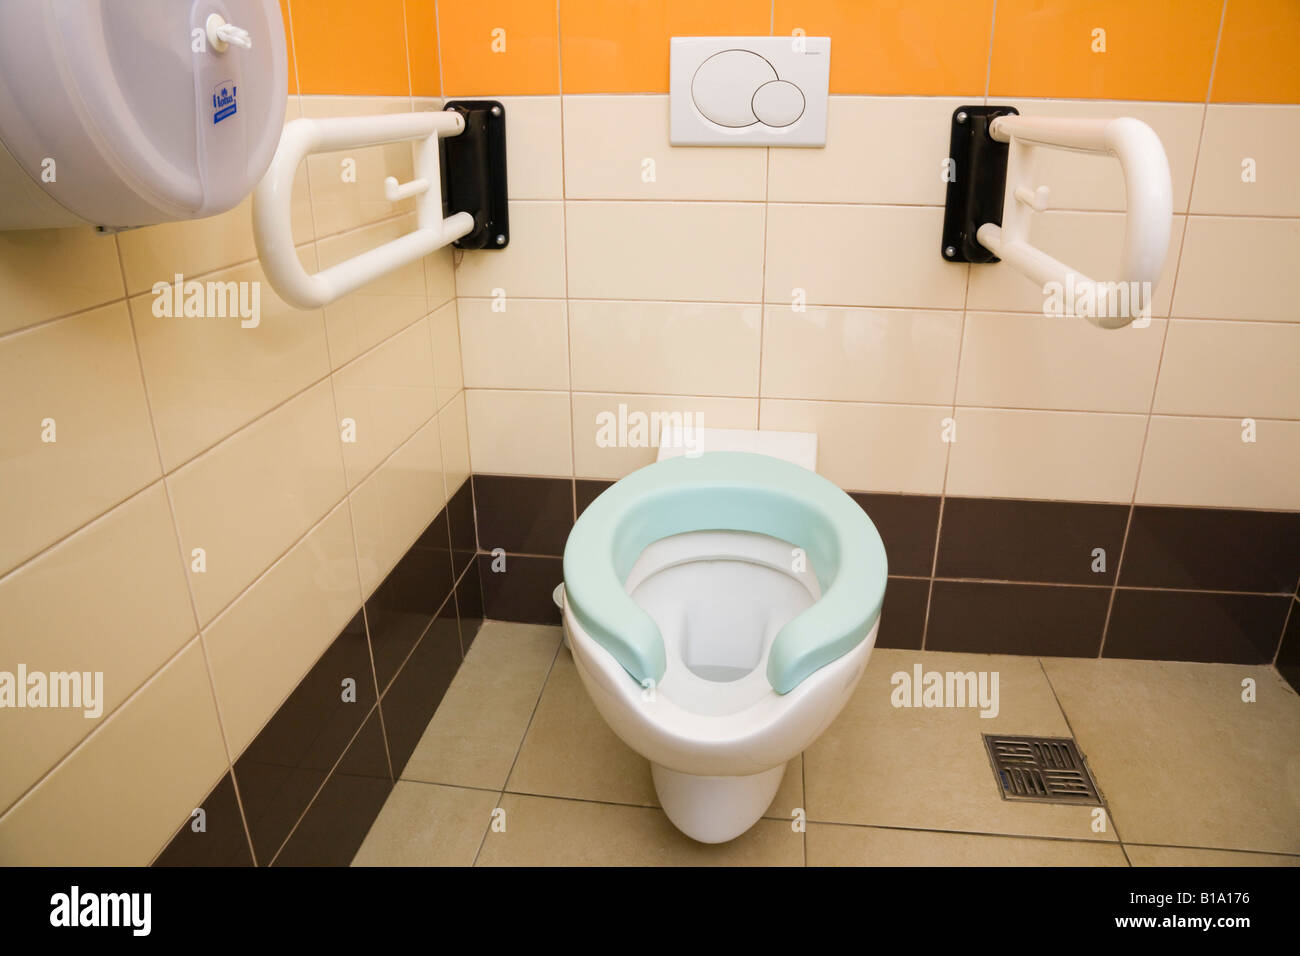 Public Disabled Toilet Inside Clean Tiled Cubicle With Dual Flush Button On Wall And Drop Down Handrail Supports